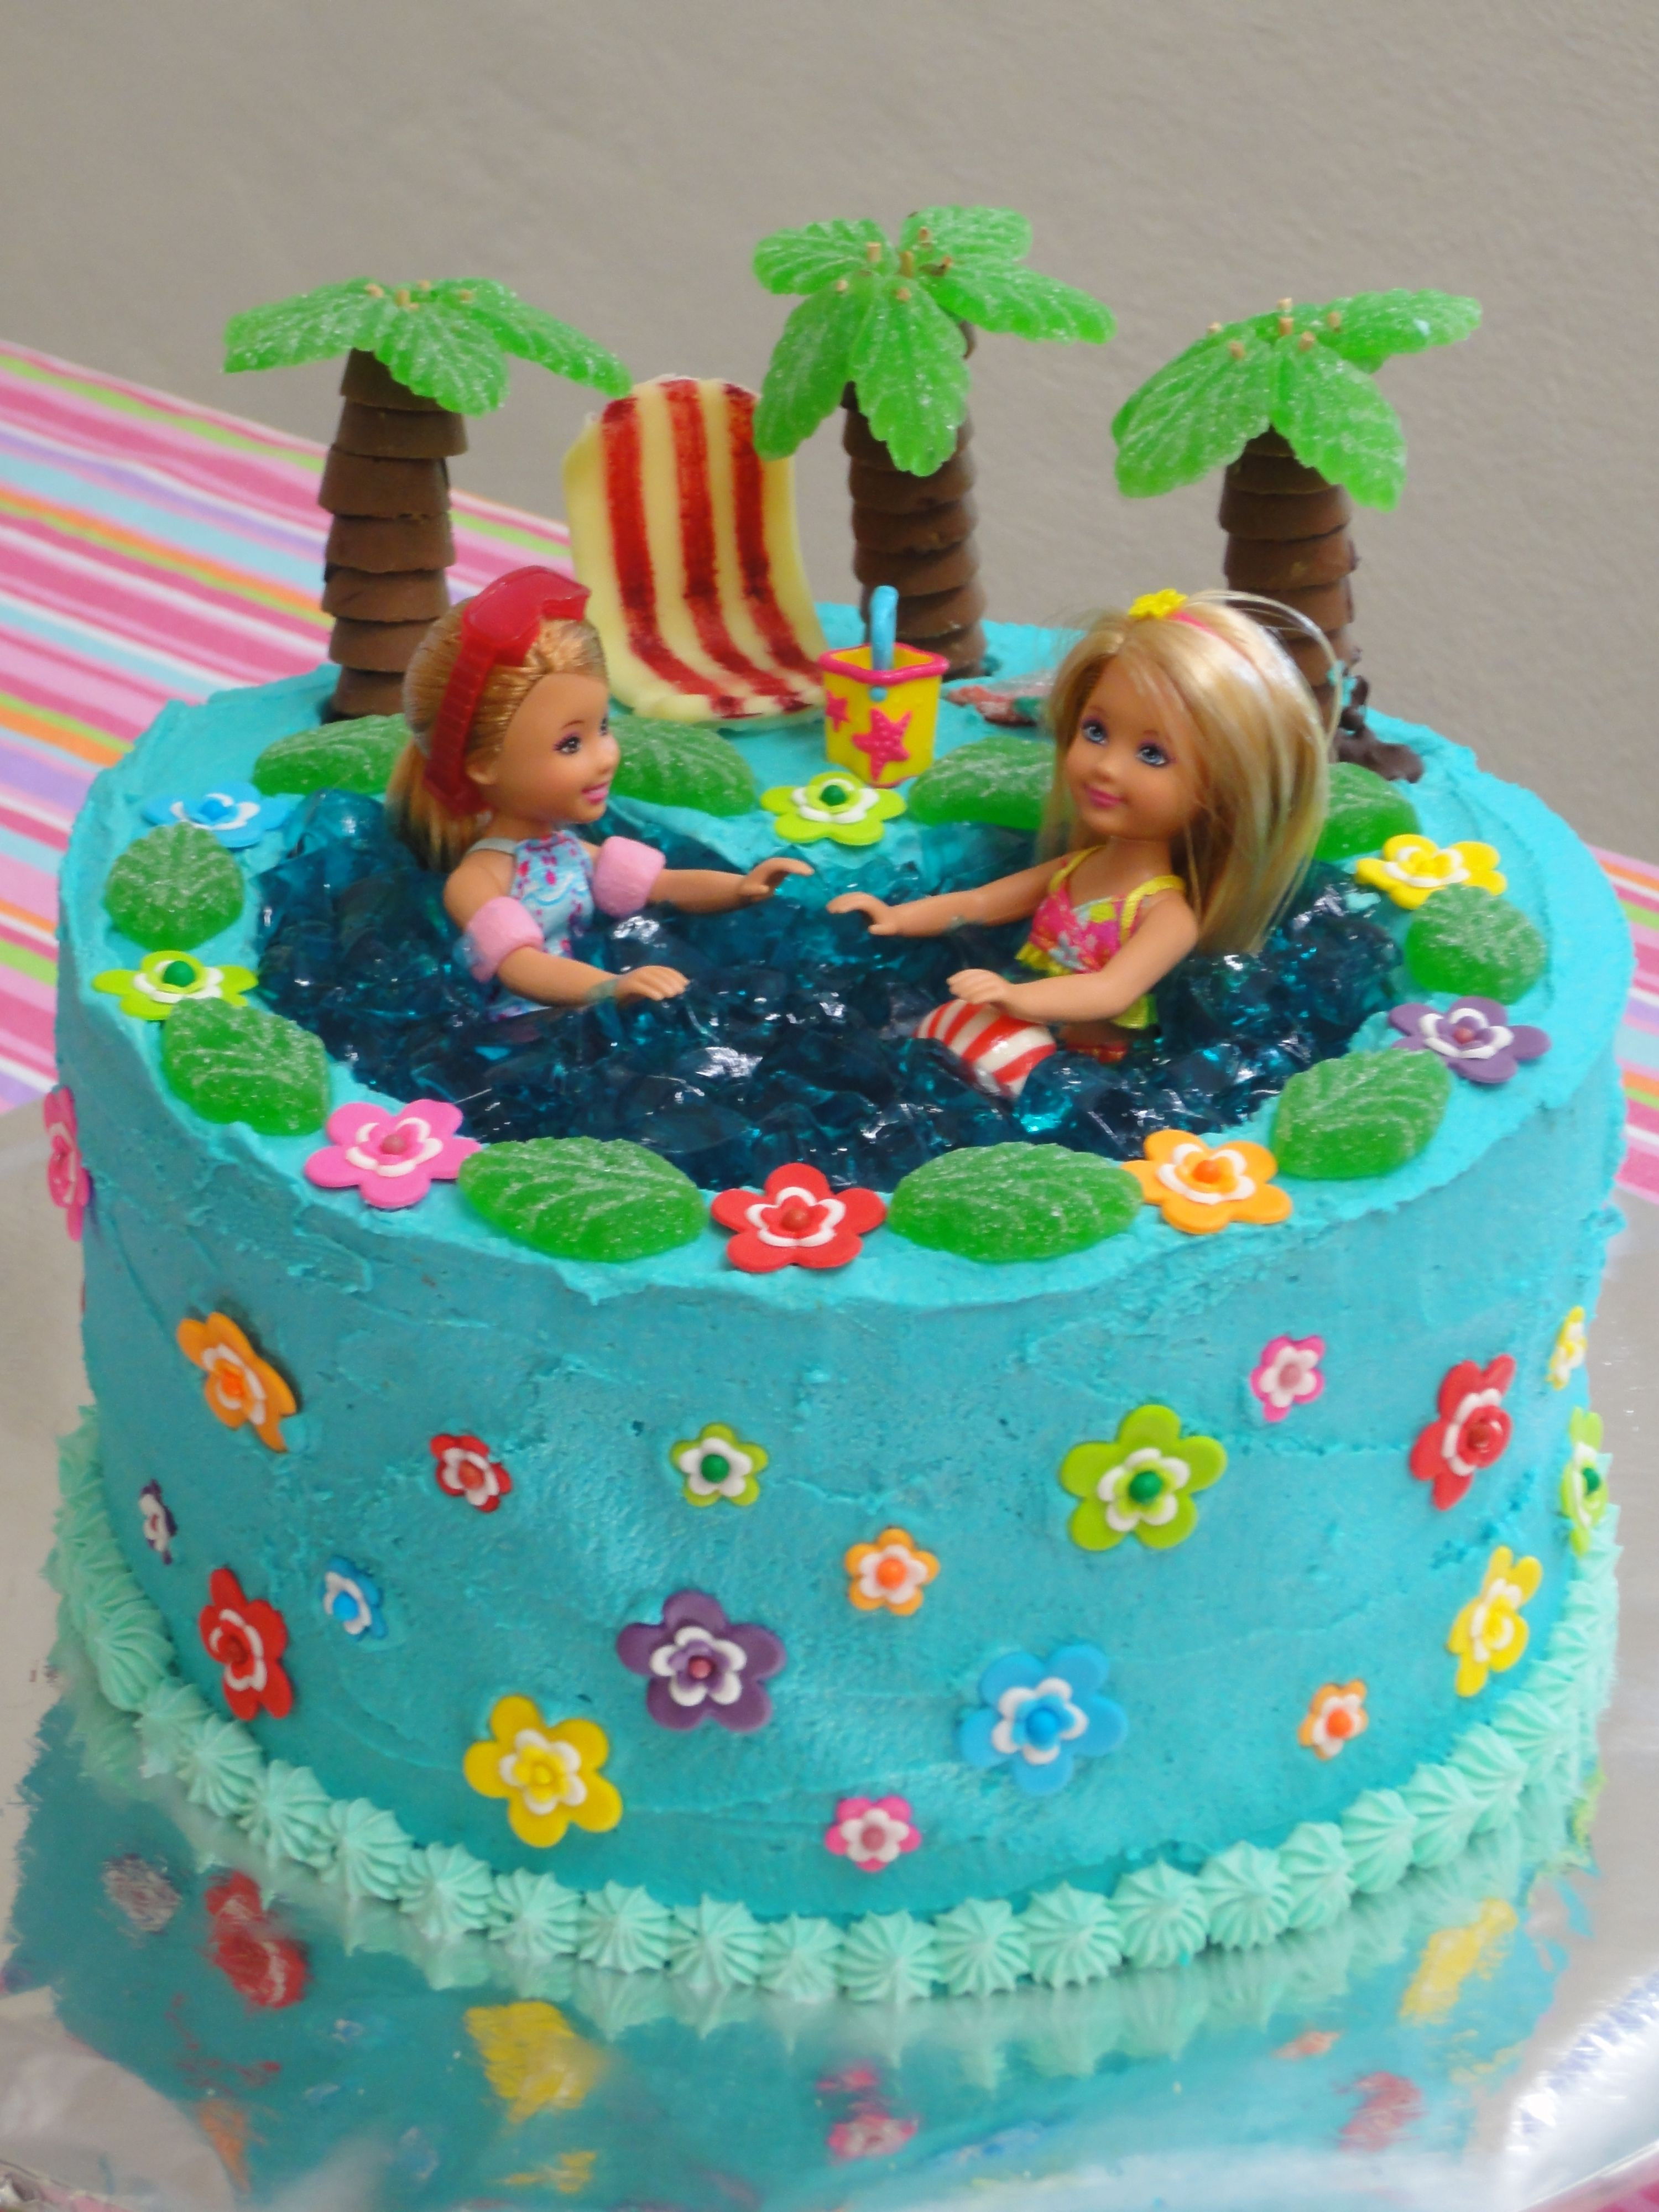 Pool Party Ideas For Girls  Barbie pool party birthday cake made by me